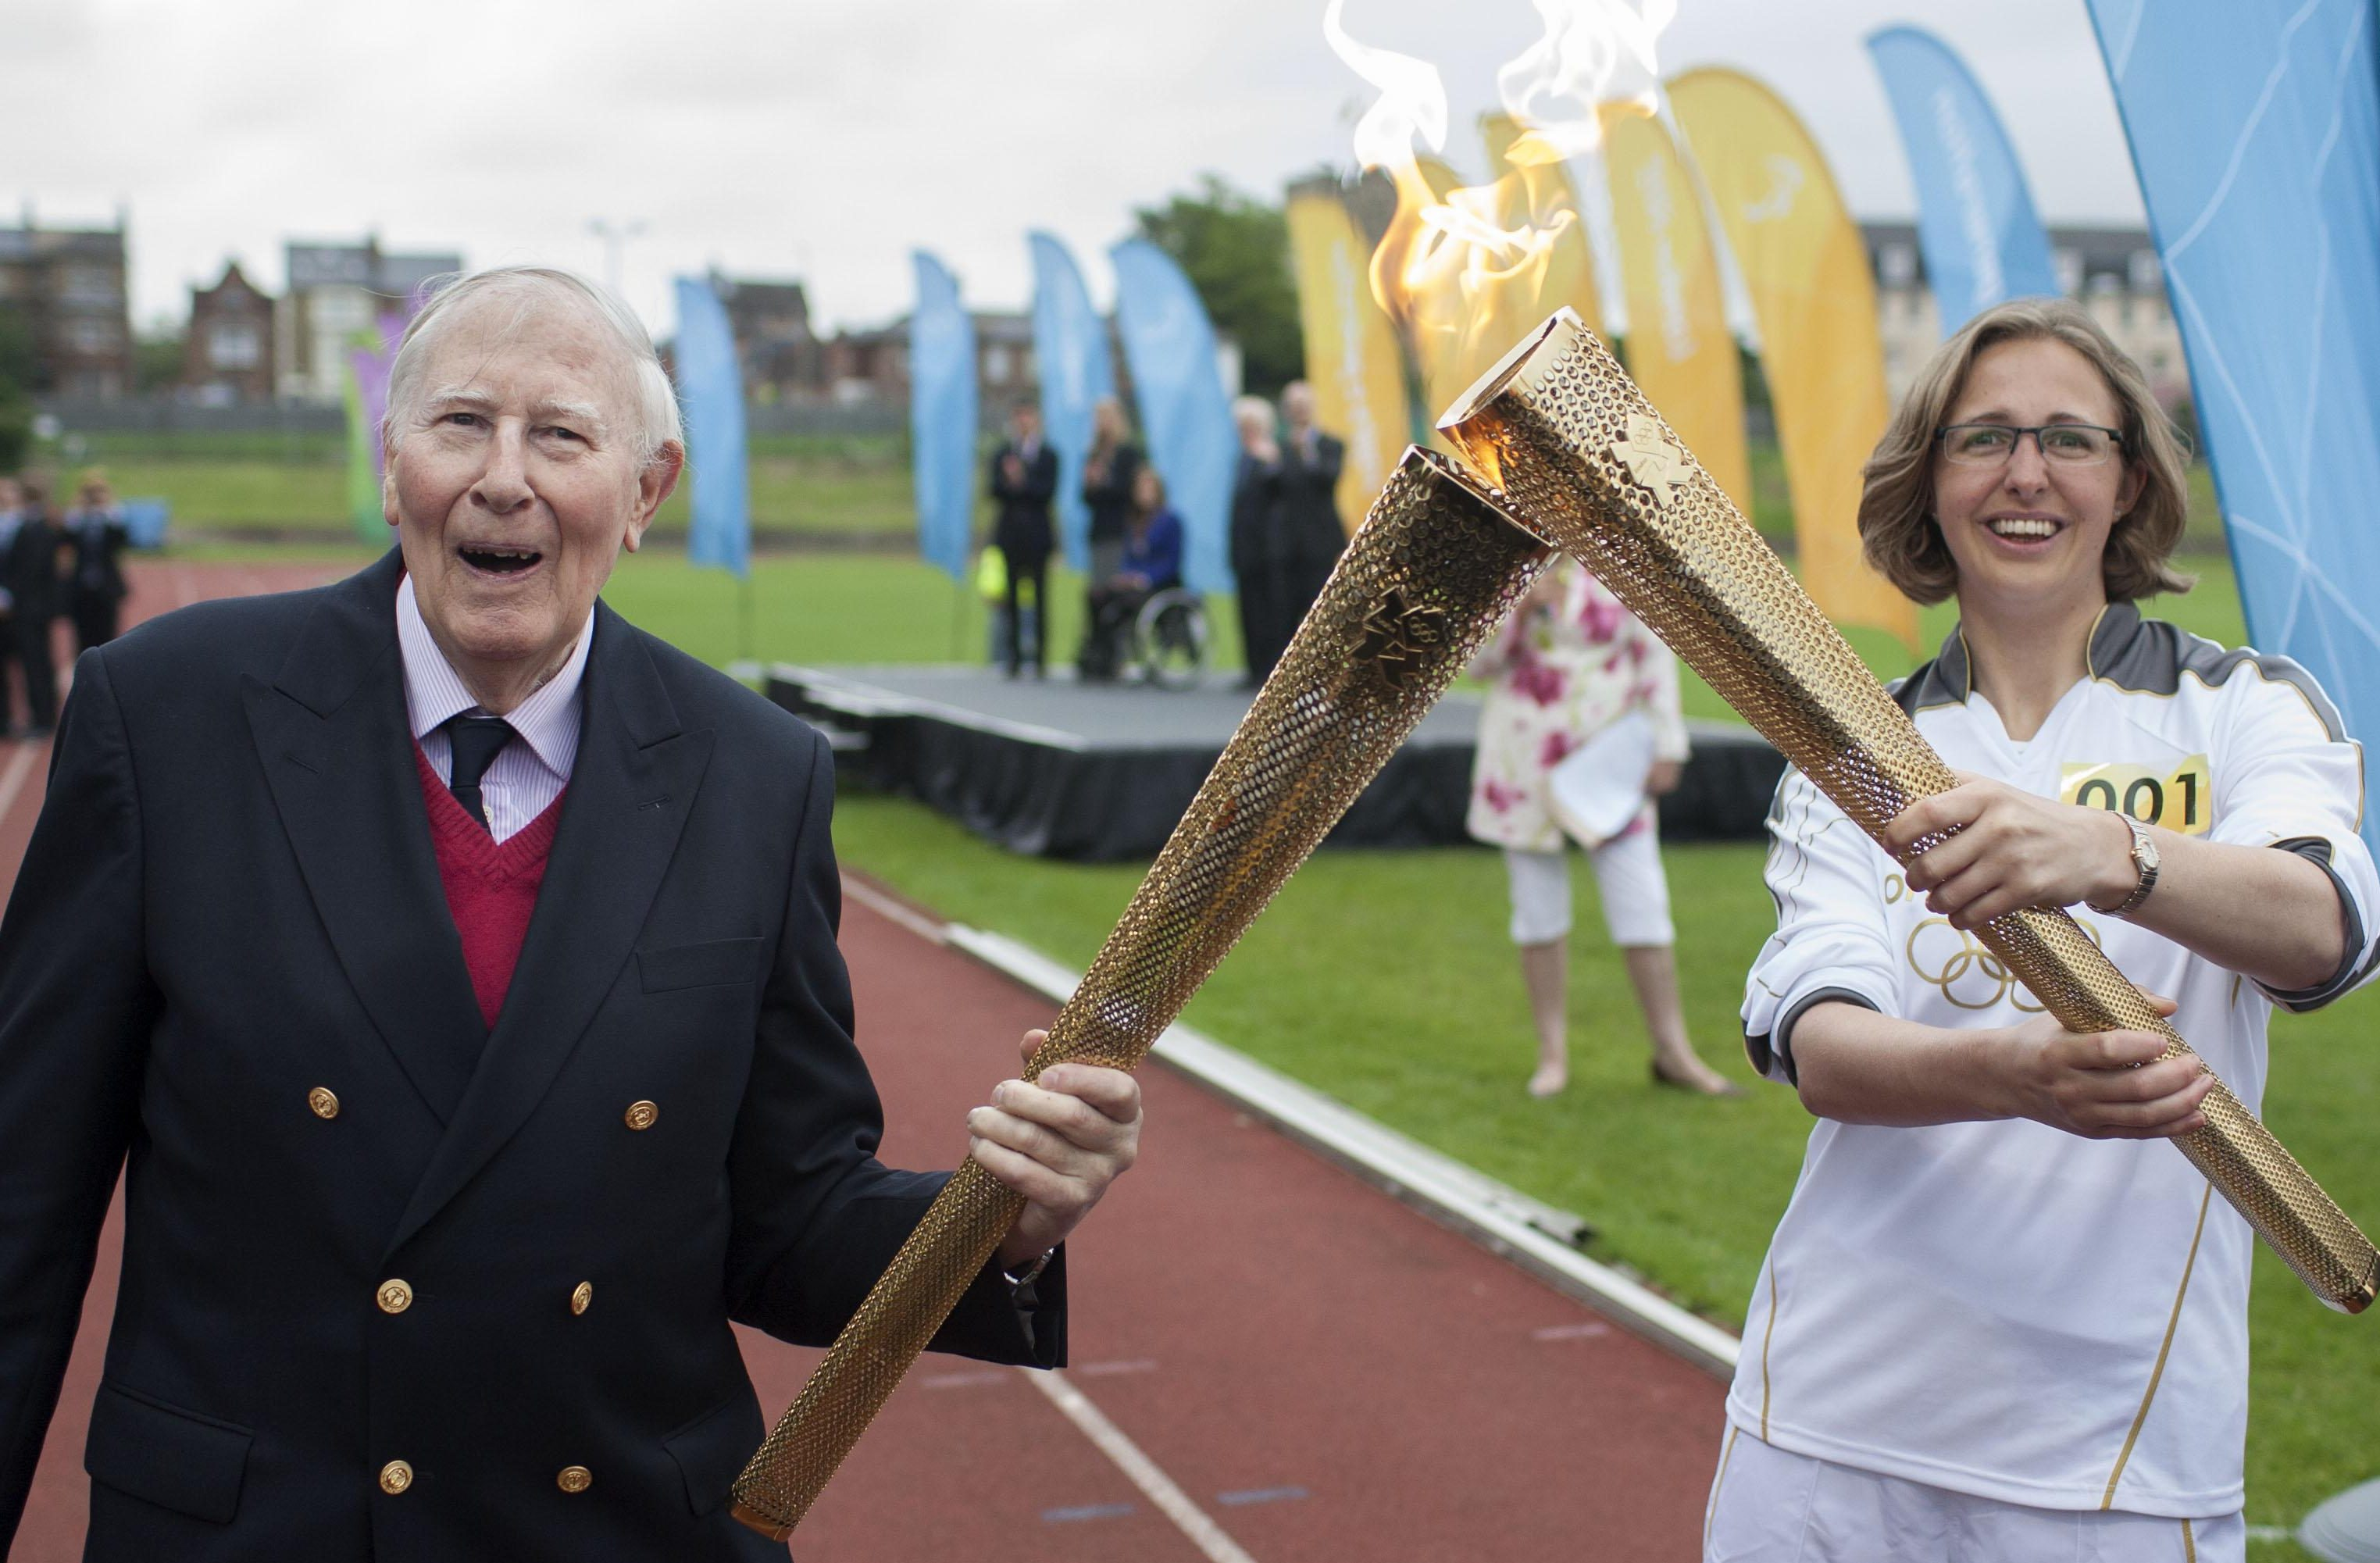 He was passed the Olympic flame in 2012 at the Oxford track where he set his record